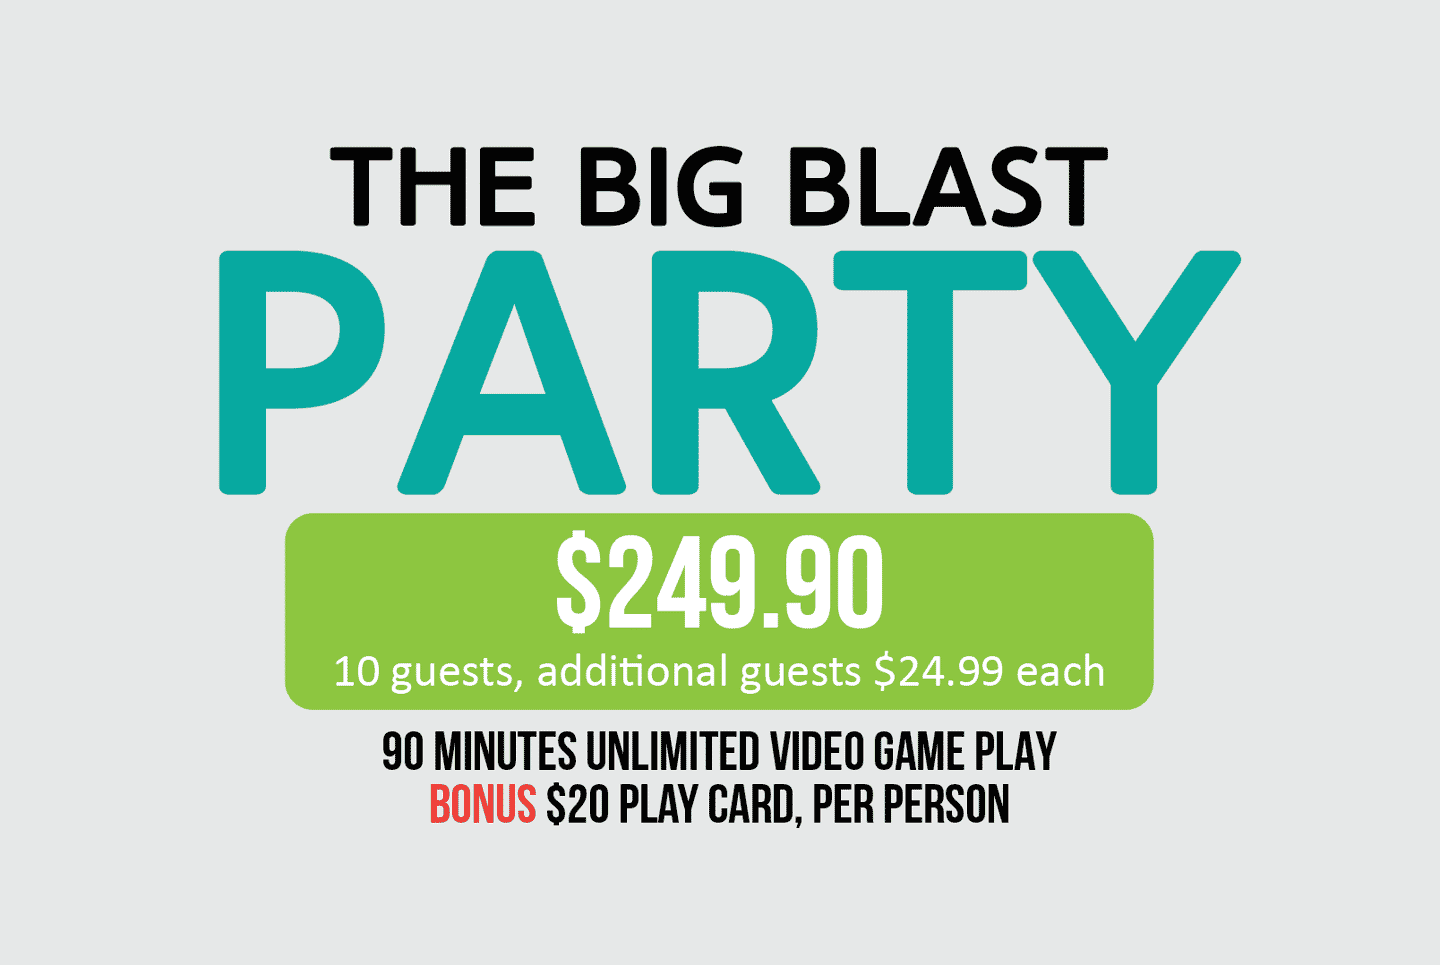 The Big Blast Party Package